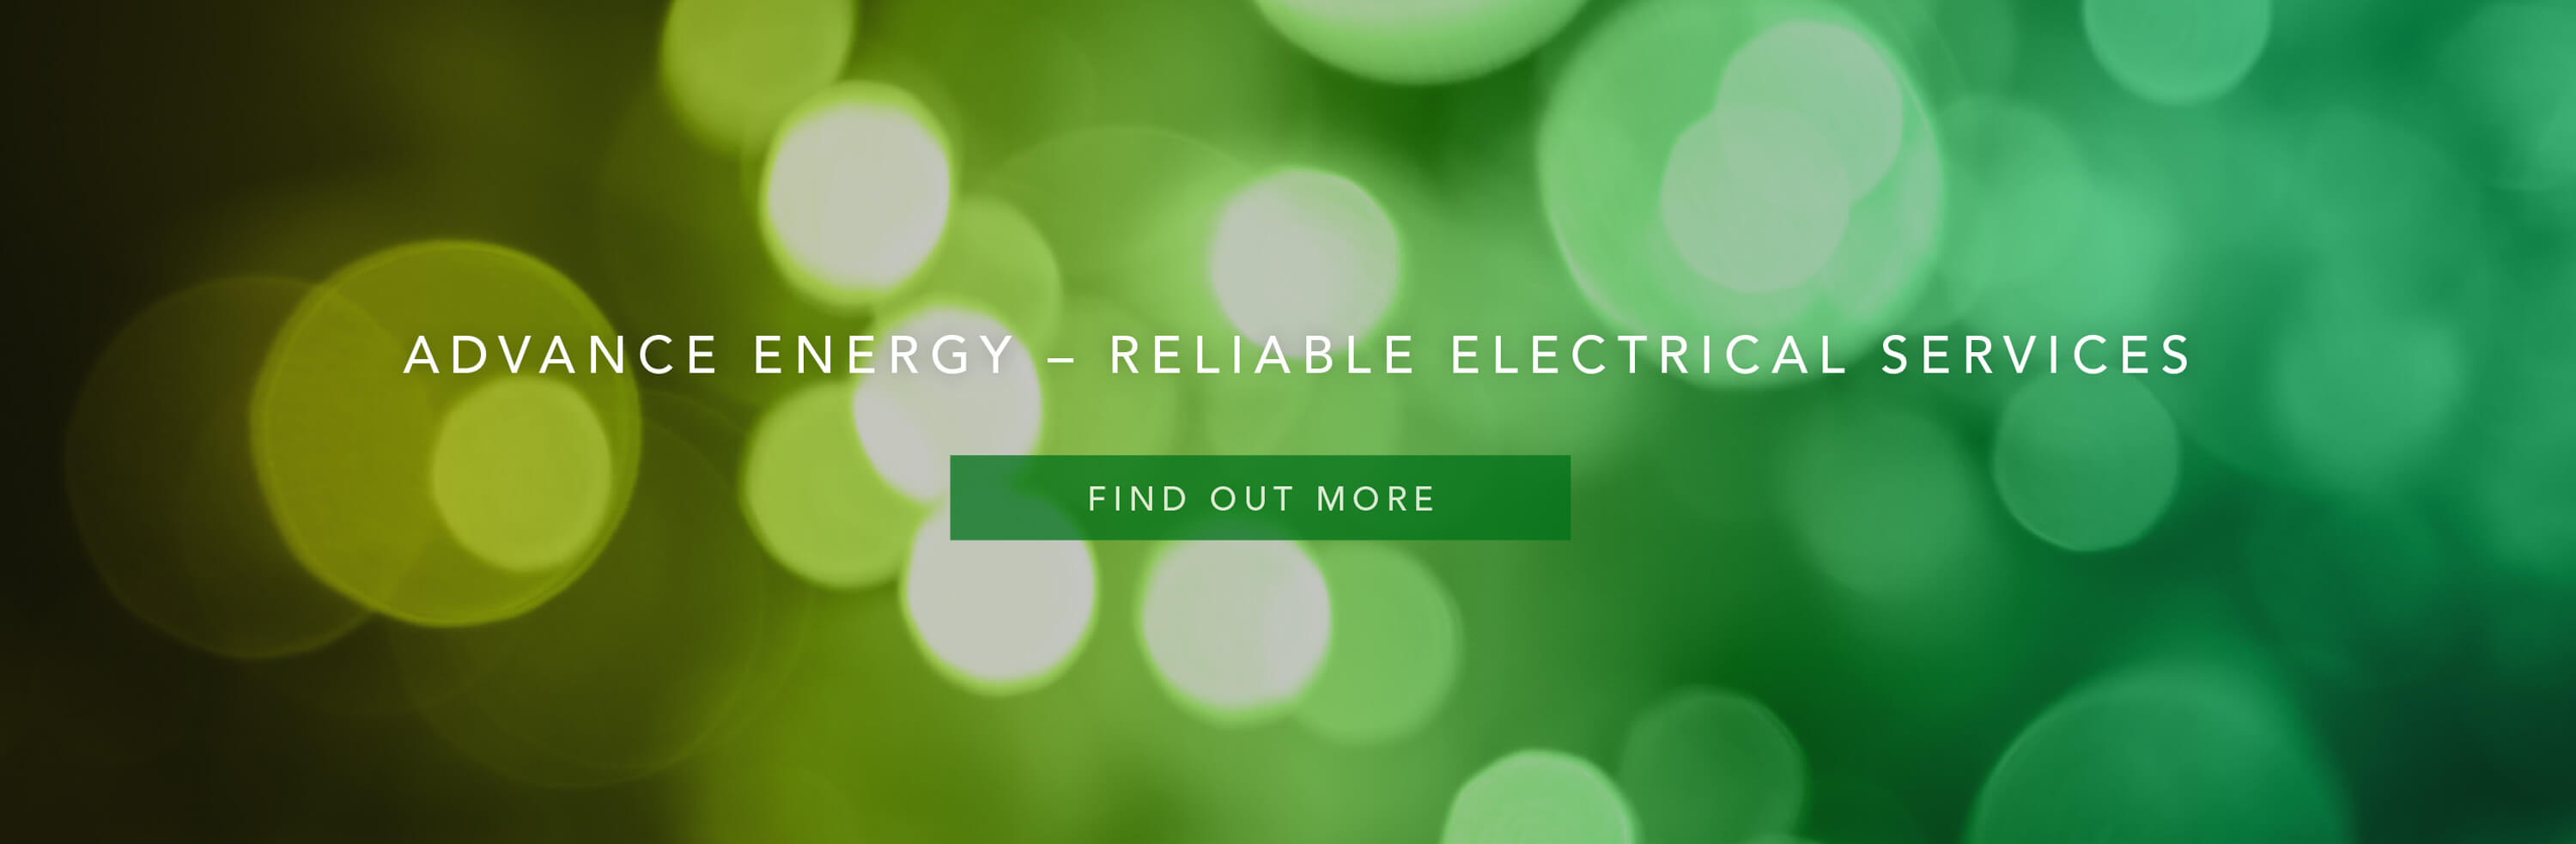 advance energy reliable electrical services